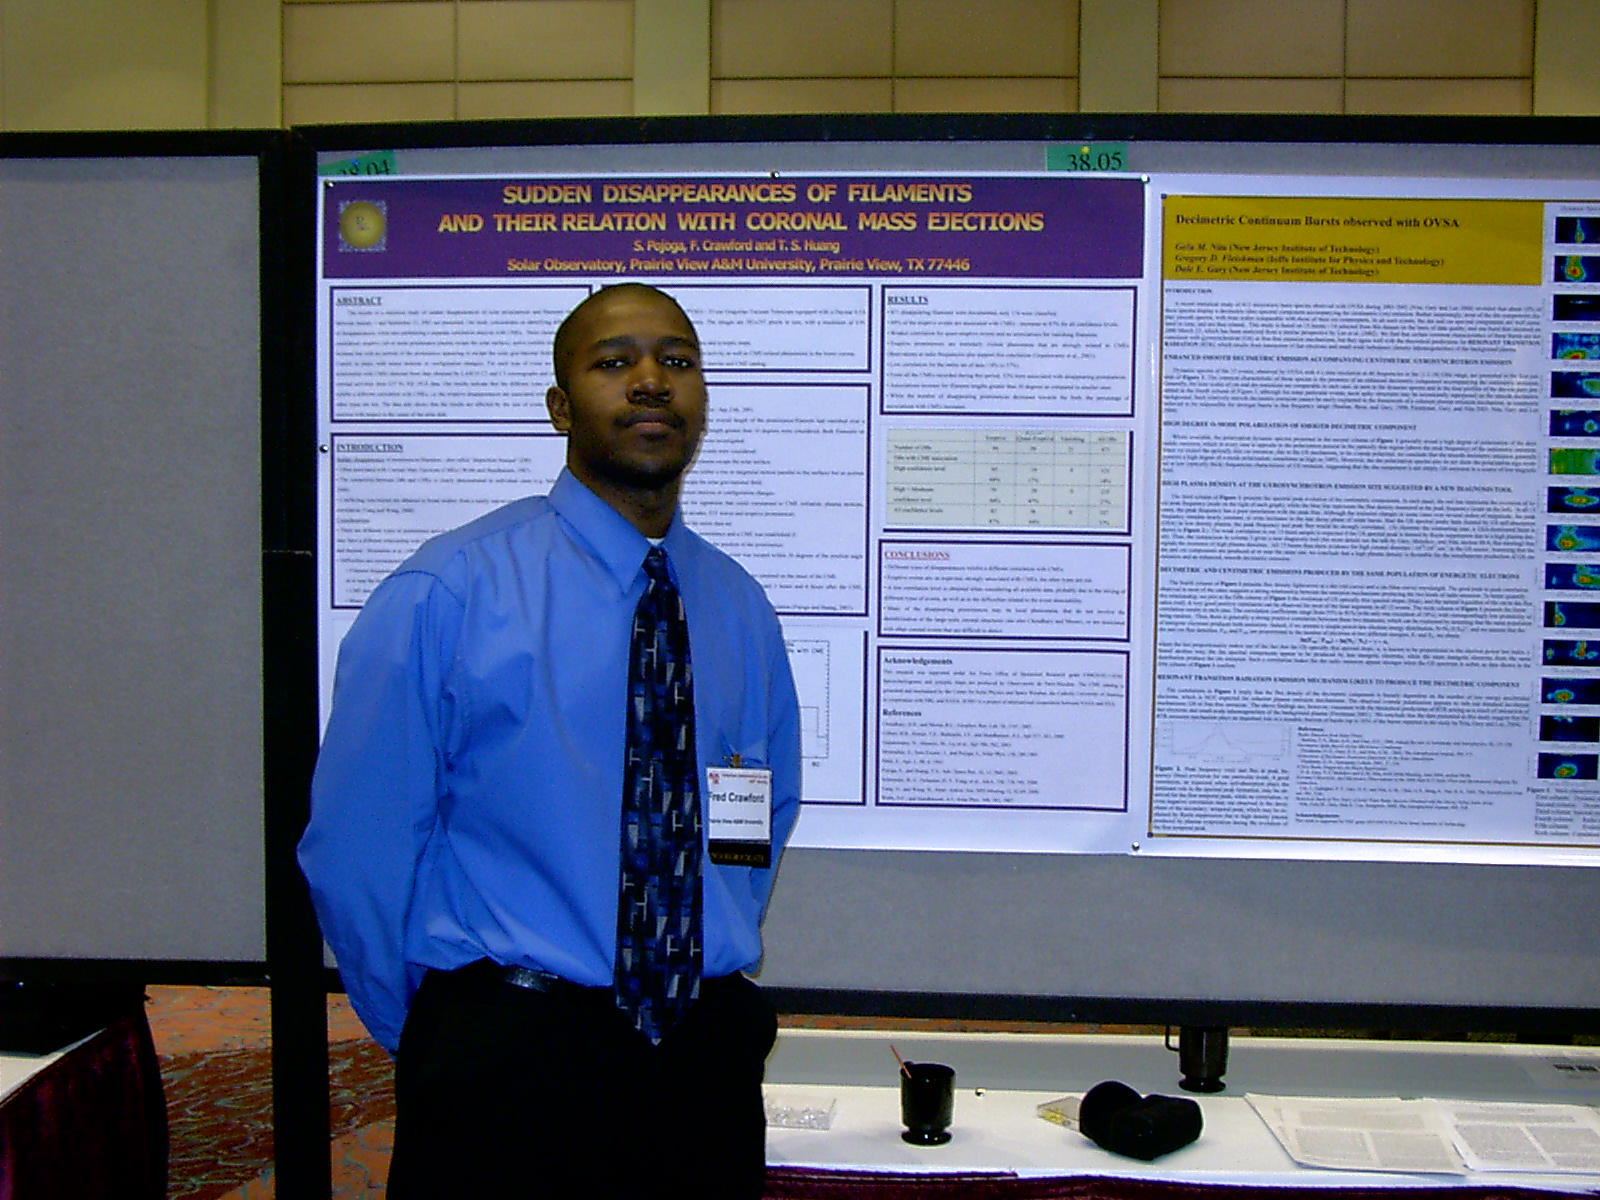 Undergraduate student Fredrick Crawford attending the AAS Meeting, June 2004 in Denver, CO.